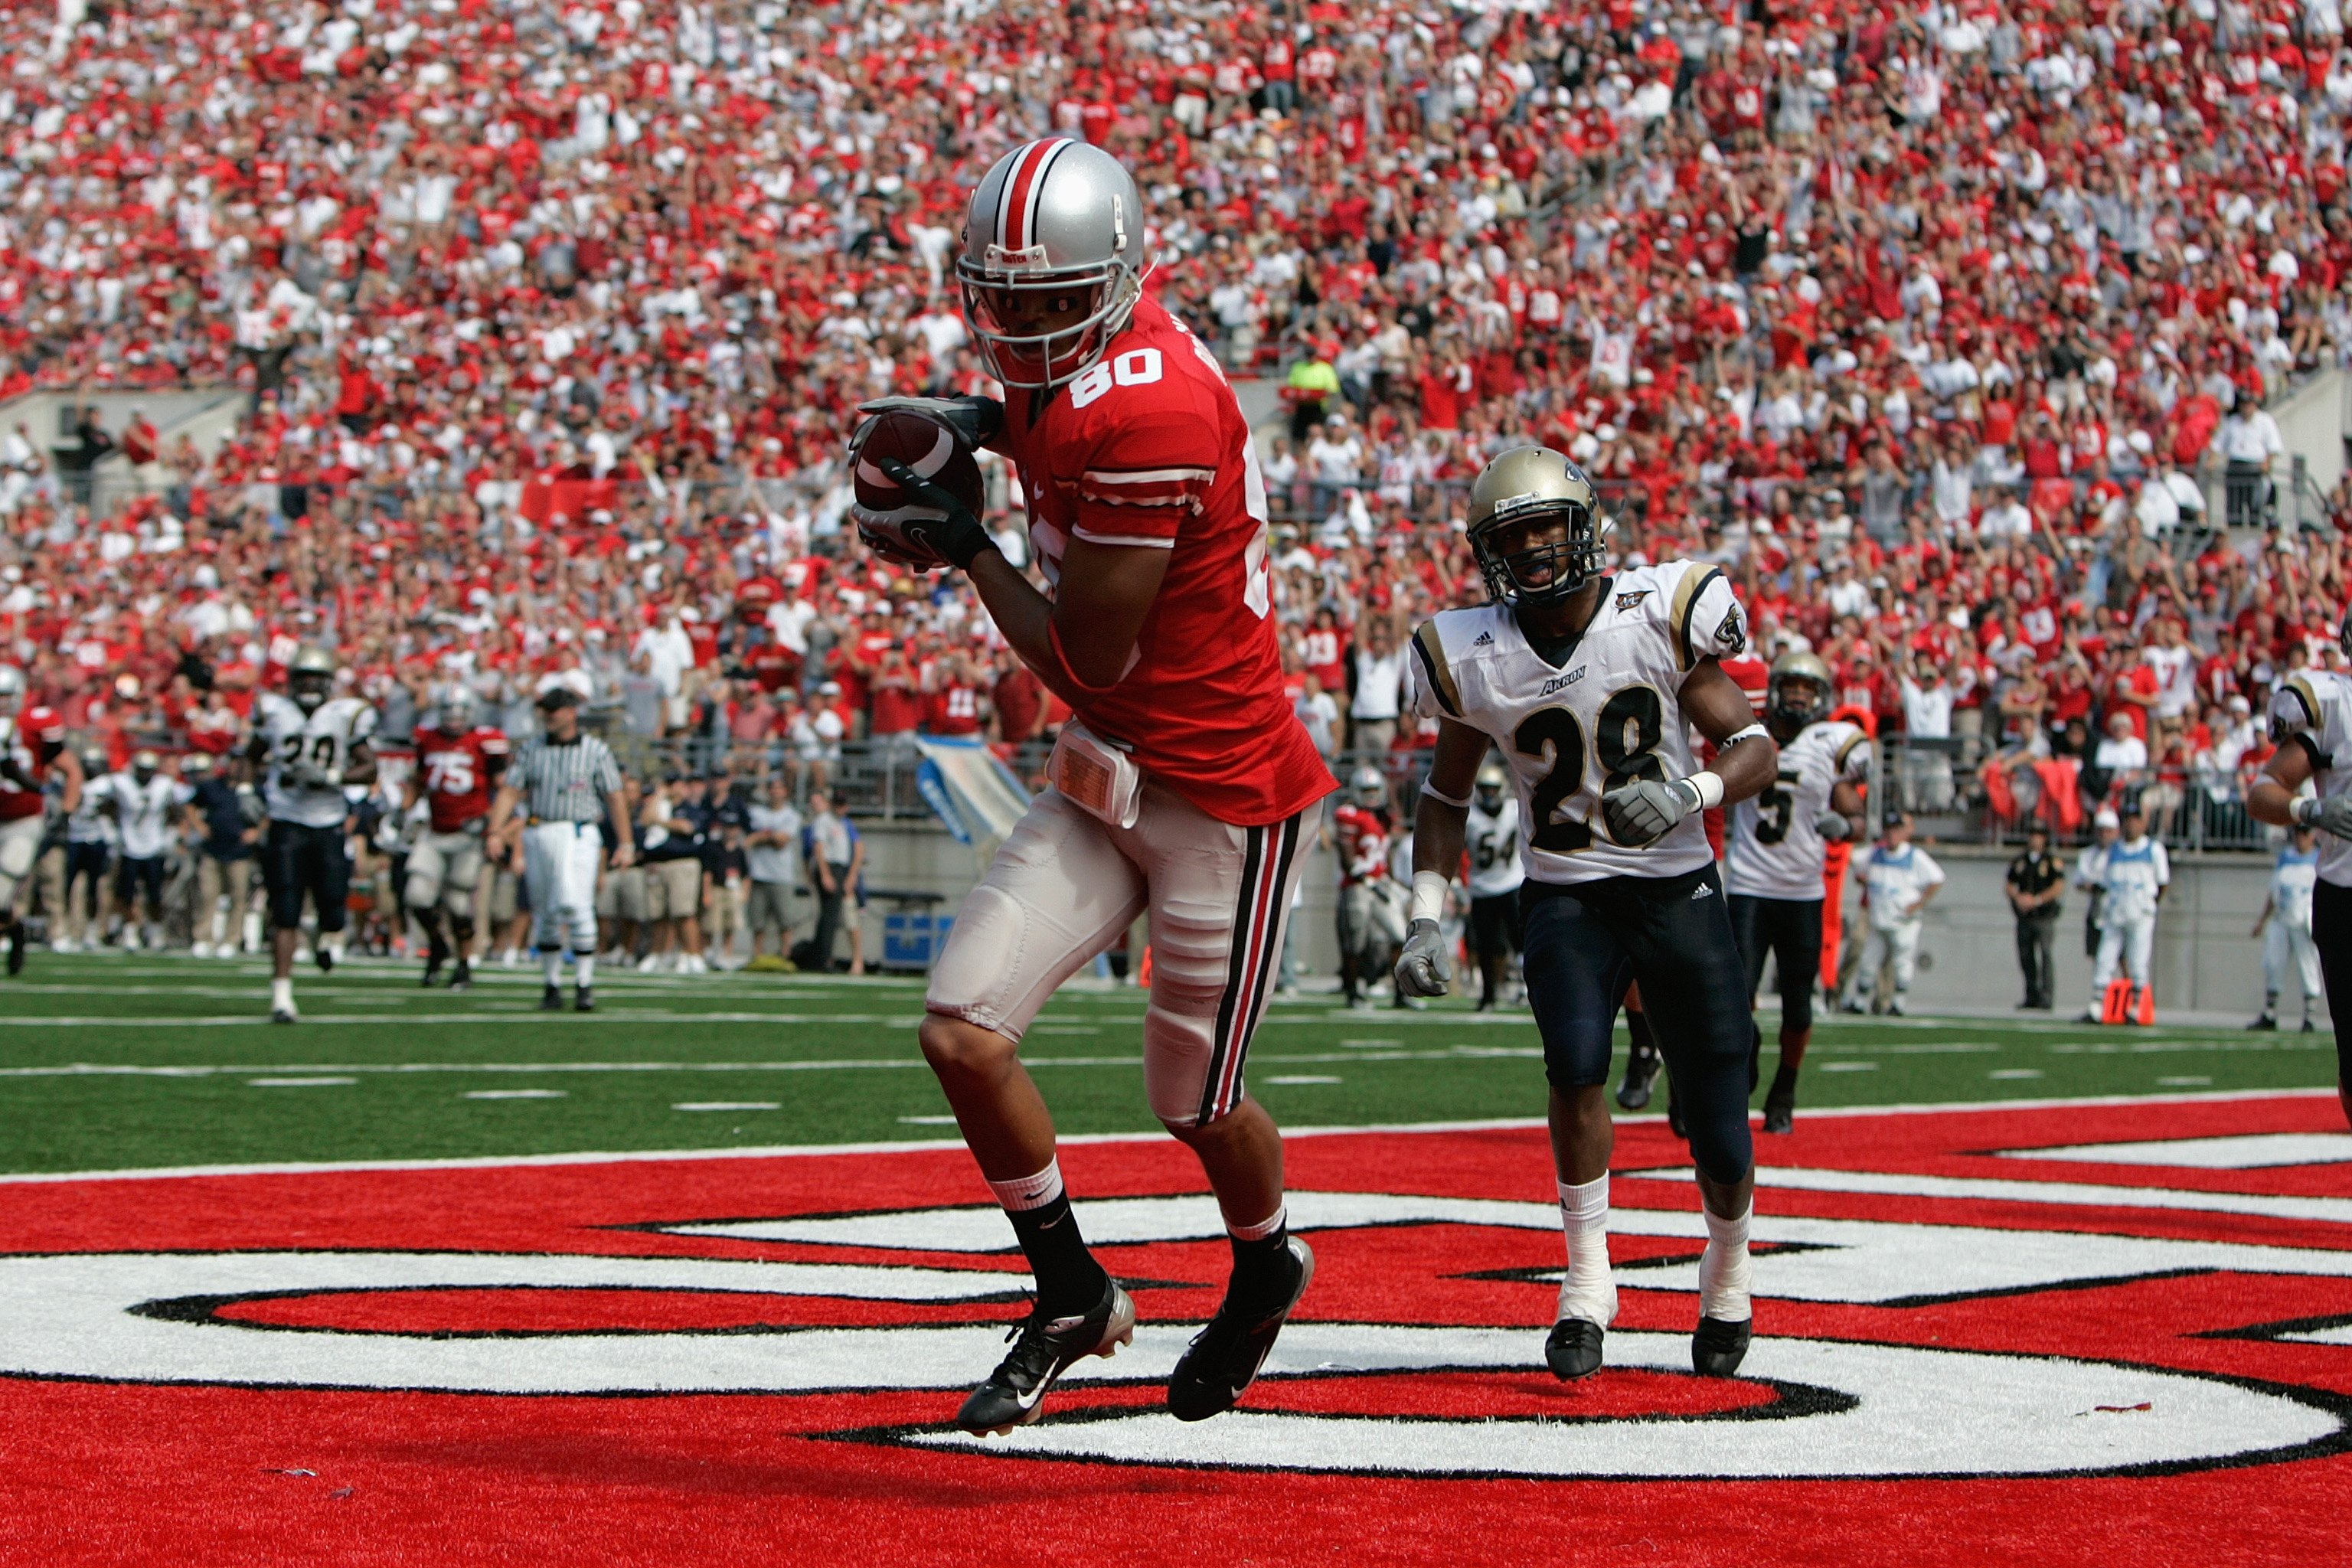 COLUMBUS, OH - SEPTEMBER 8:  Brian Robiskie #80 of the Ohio State Buckeyes scores a touchdown during the game against the Akron Zips at Ohio Stadium on September 8, 2007 in Columbus, Ohio. Ohio State won 20-2. (Photo by David Maxwell/Getty Images)